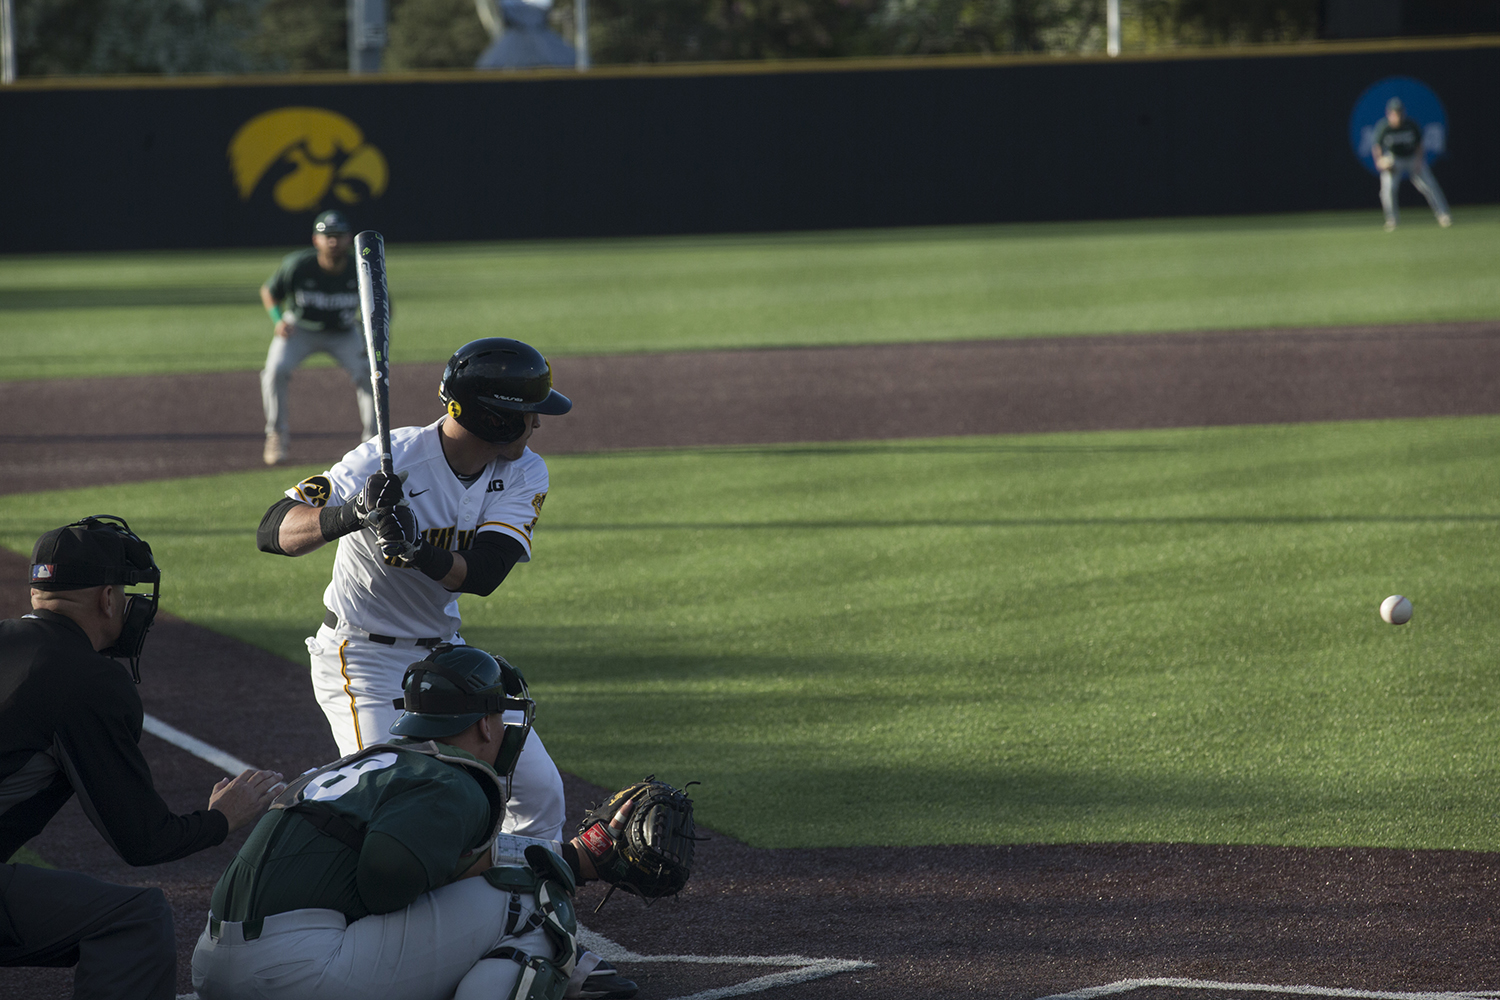 Iowa infielder Tanner Wetrich watches the ball when up at bat during the game against Michigan State at the Duane Banks Baseball Stadium on Friday, May 10, 2019. The Hawkeyes defeated the Spartans 7-5.